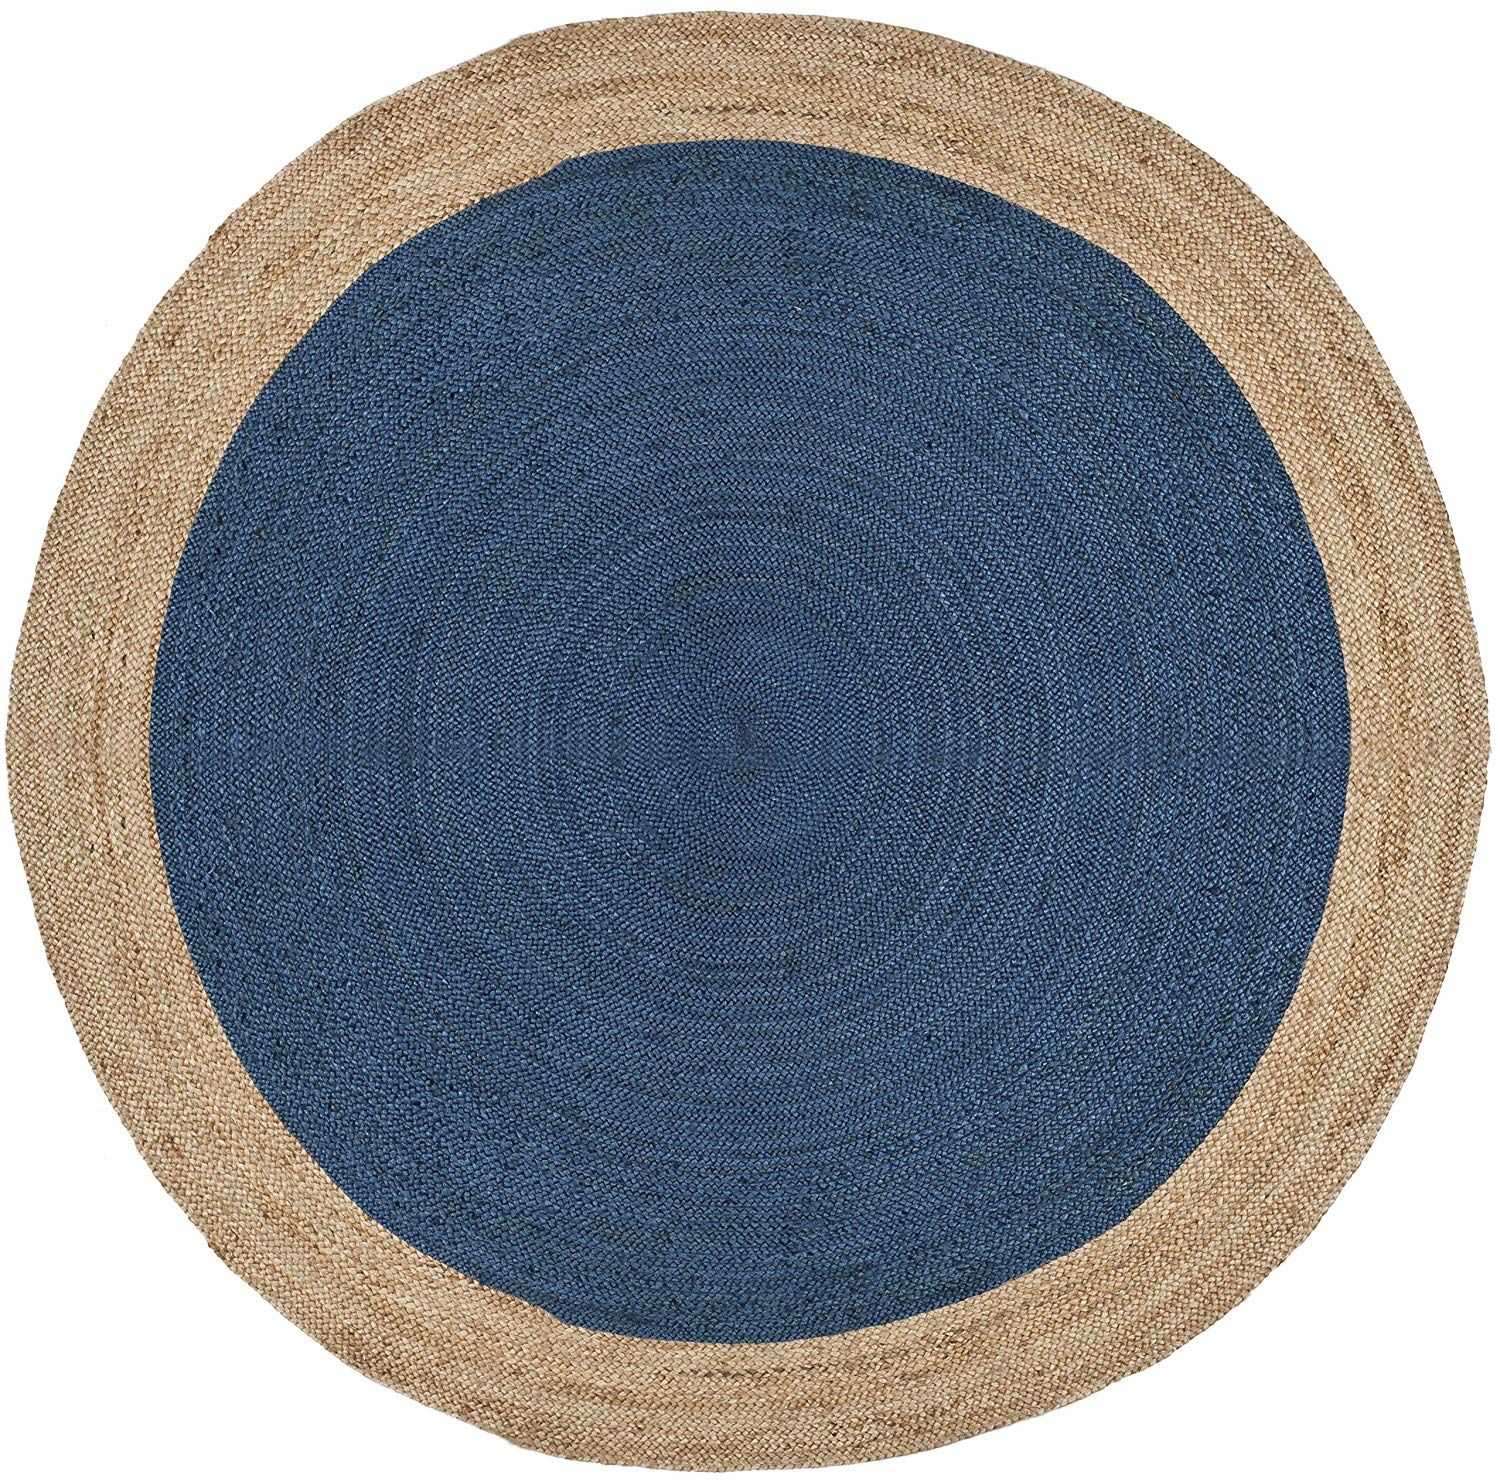 Safavieh Natural Fiber Collection Nf801d Hand Woven Royal Blue And Natural Jute Round Area Rug Round Area Rugs Colorful Rugs Area Rugs